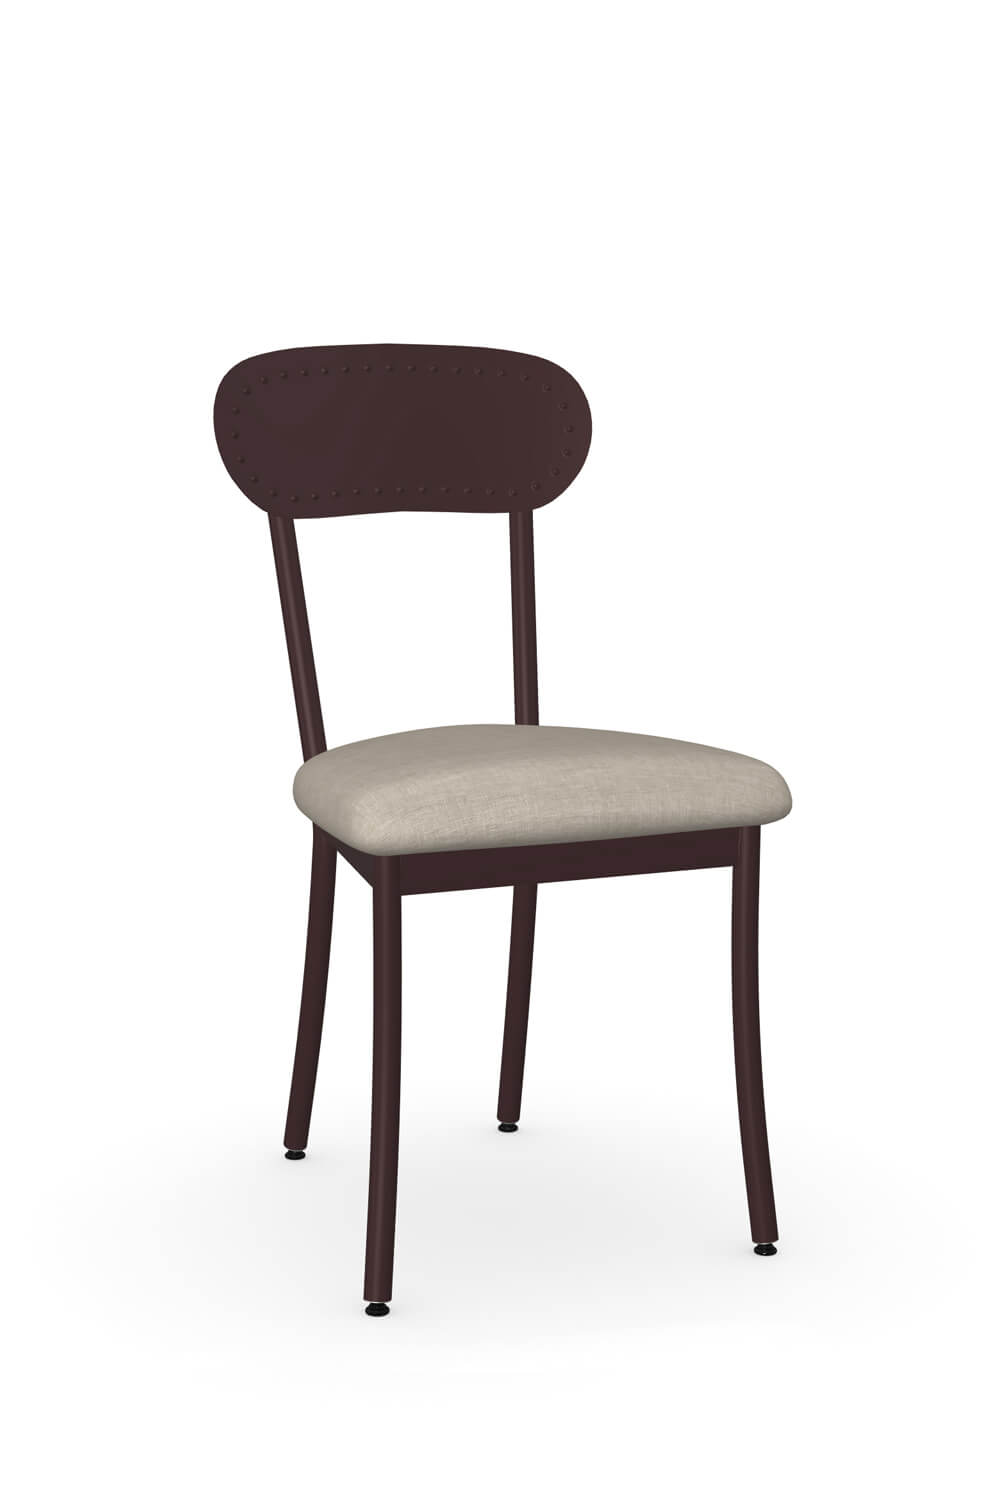 Bean Dining Chair with Wood Back and Seat Cushion